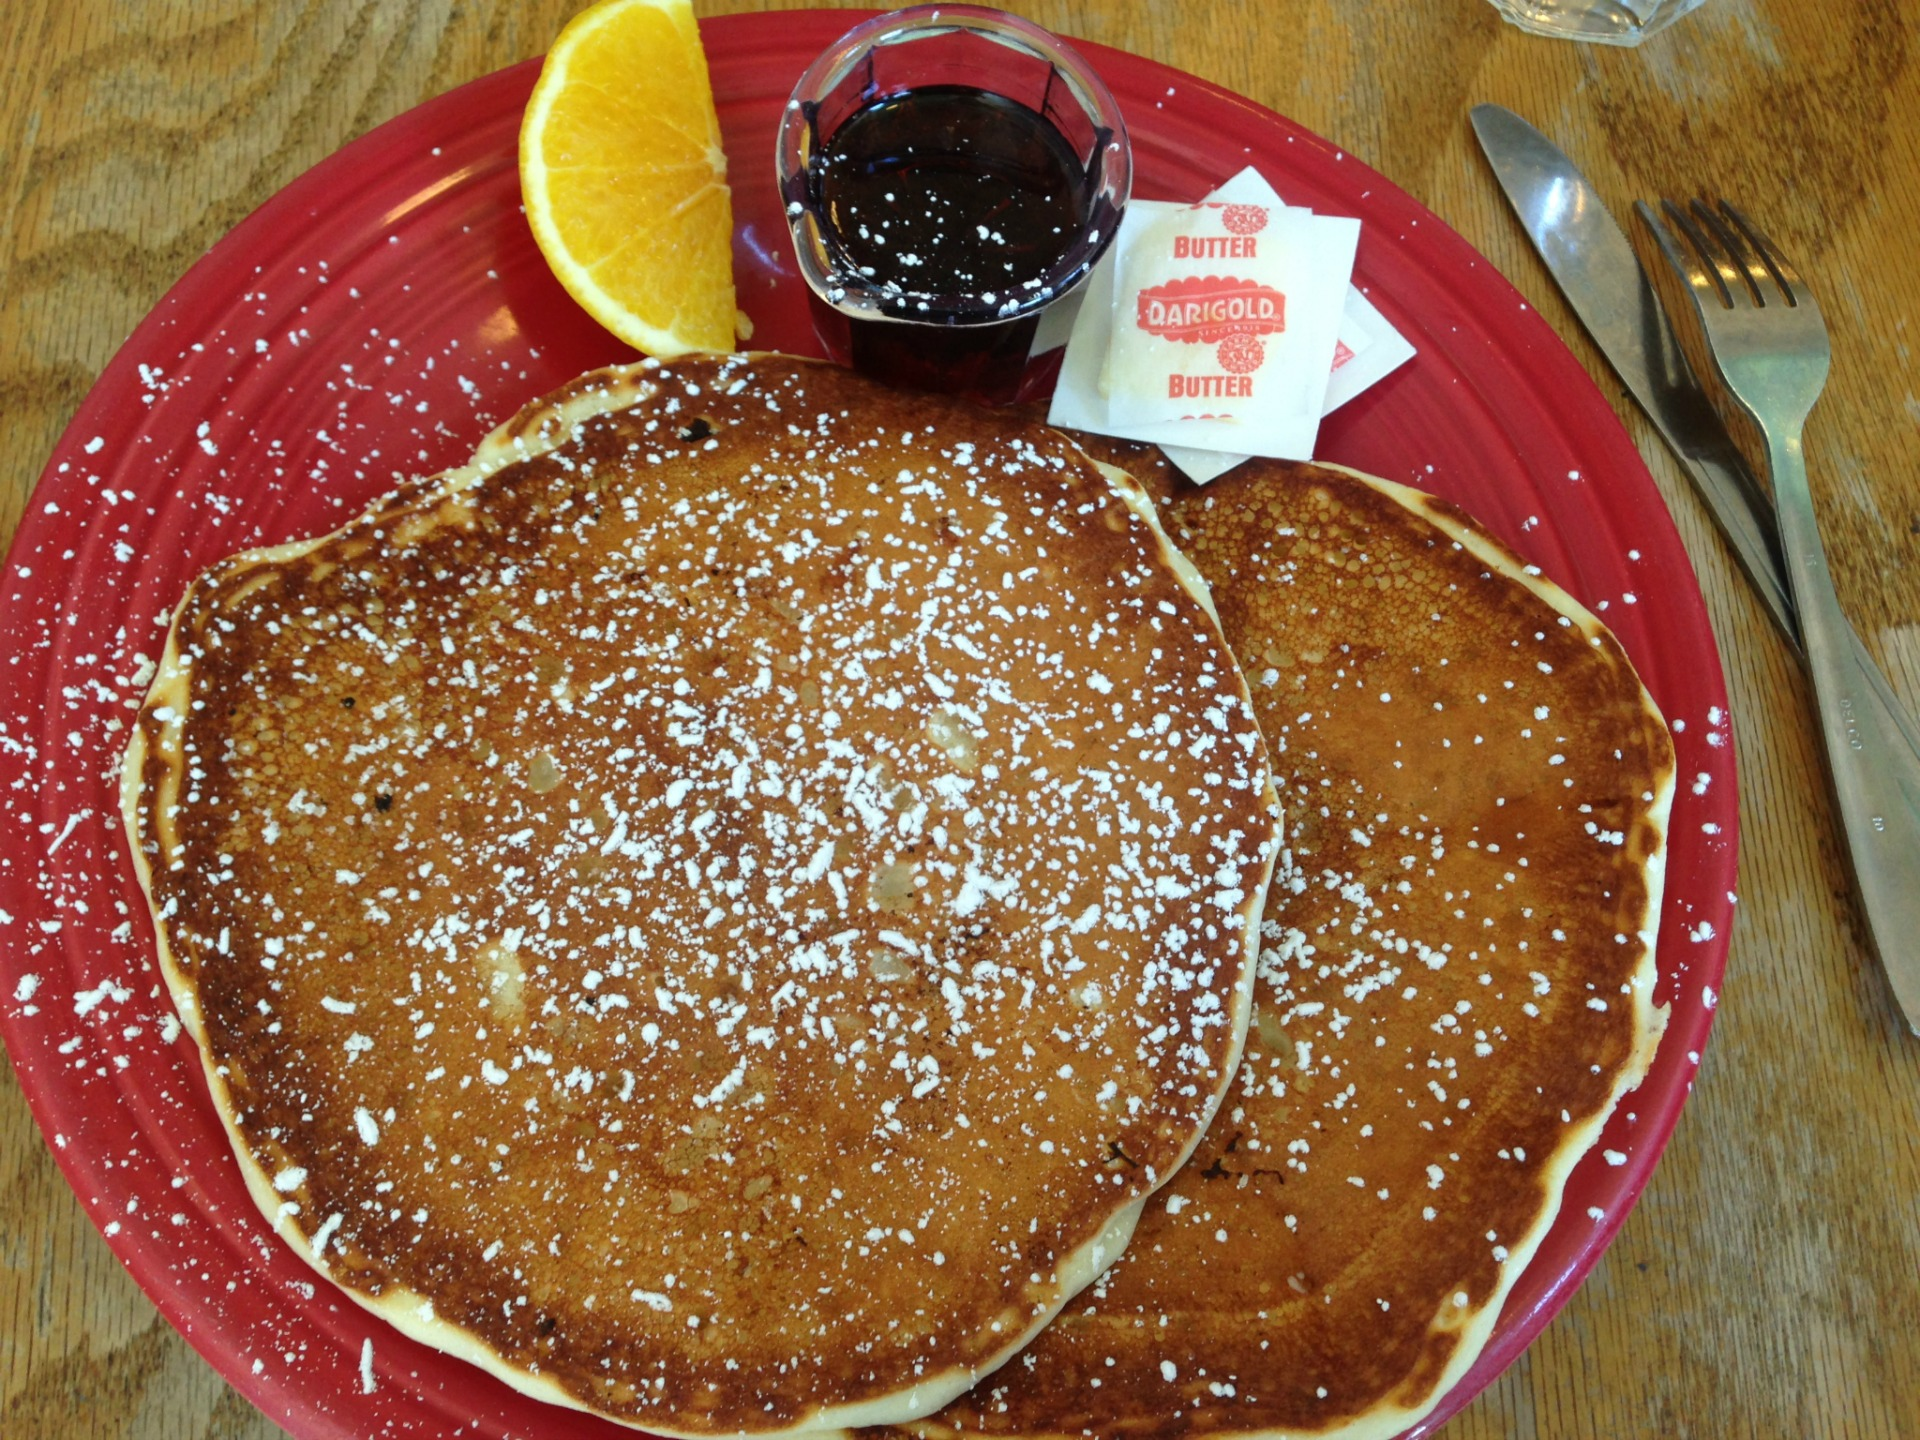 Buttermilk pancakes at Mama's Royal Cafe